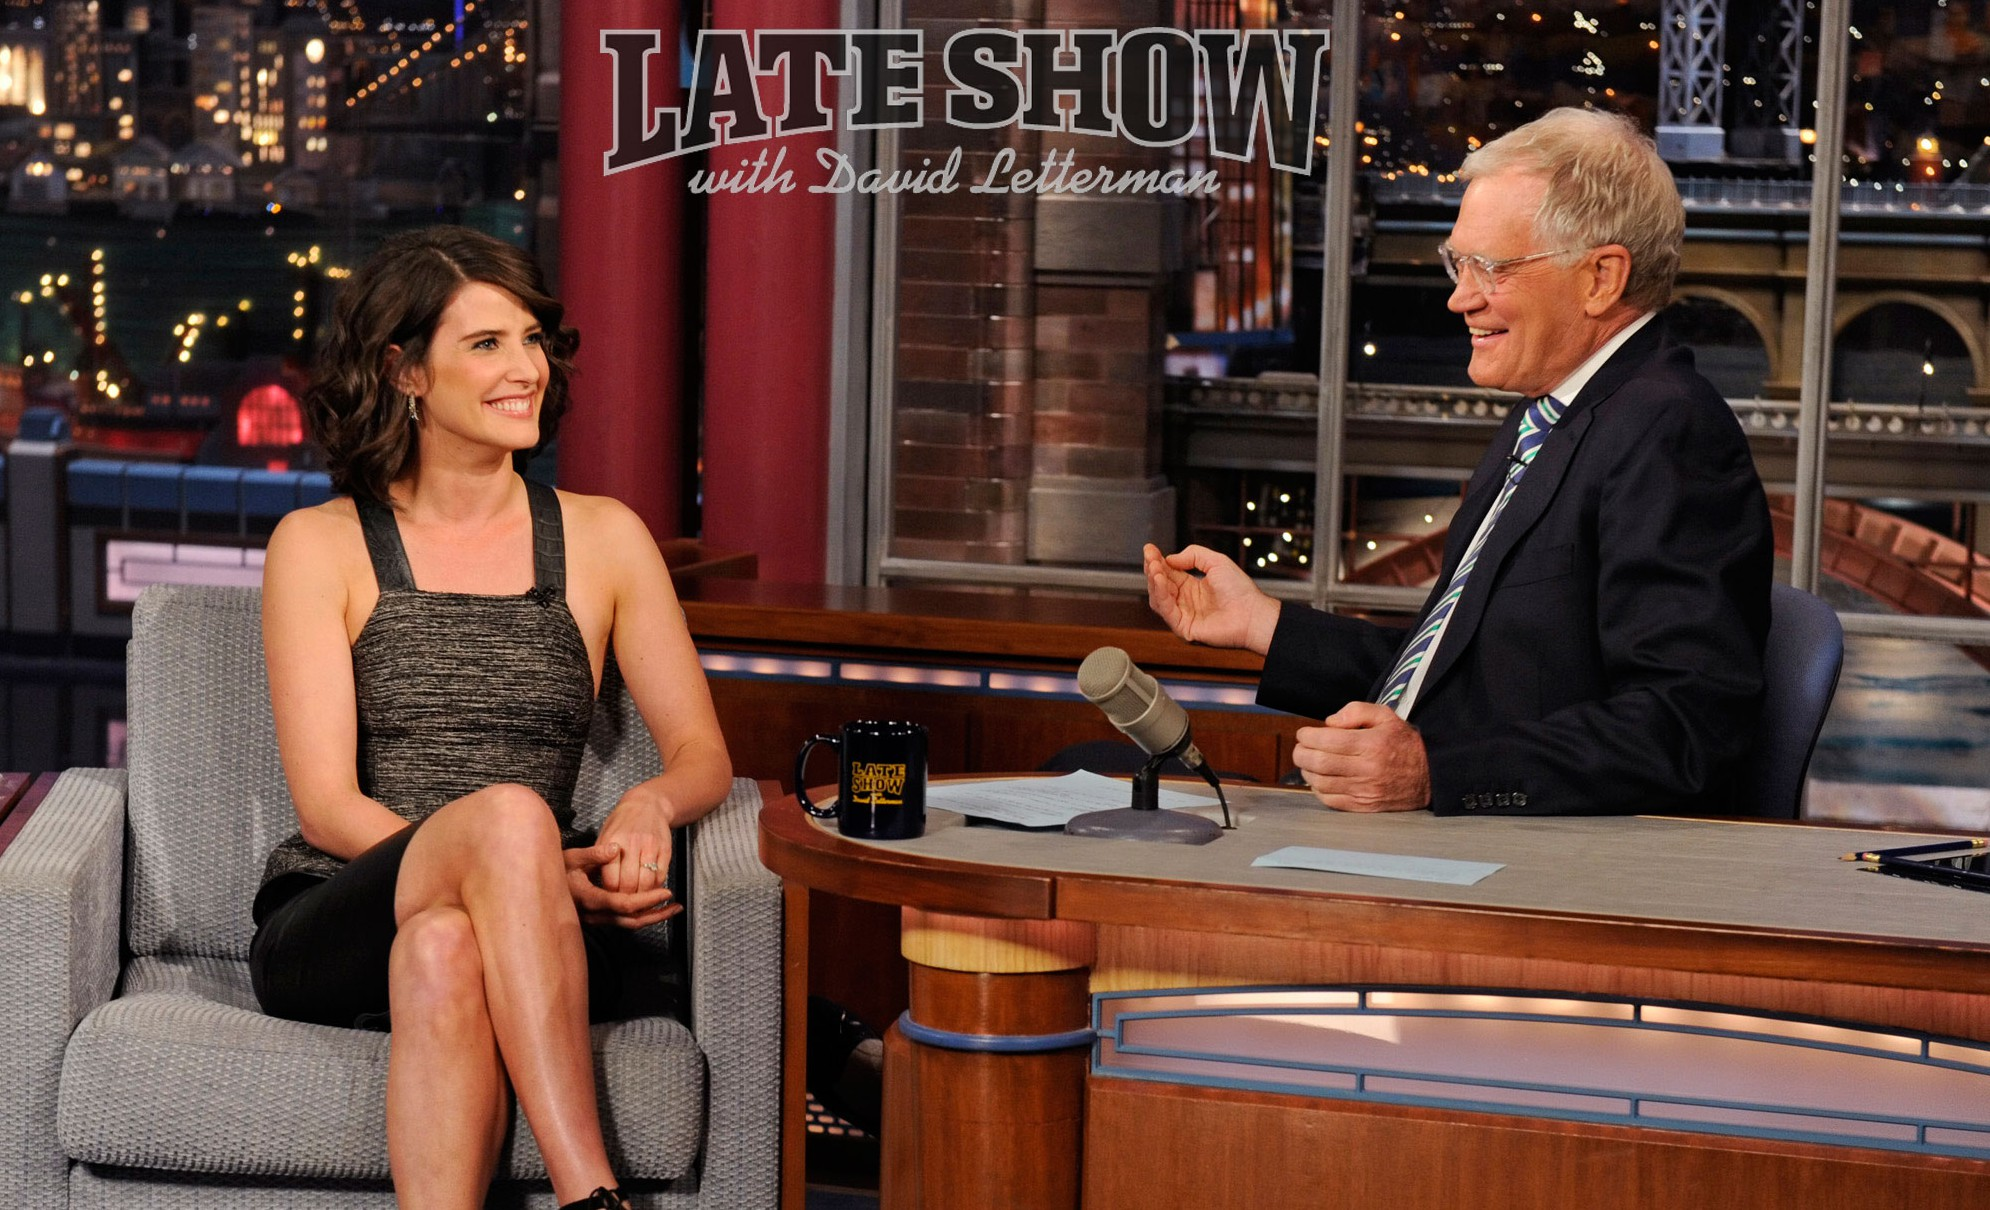 Late-Show-with-David-Letterman-2012-cobie-smulders-31078548-2000-1589